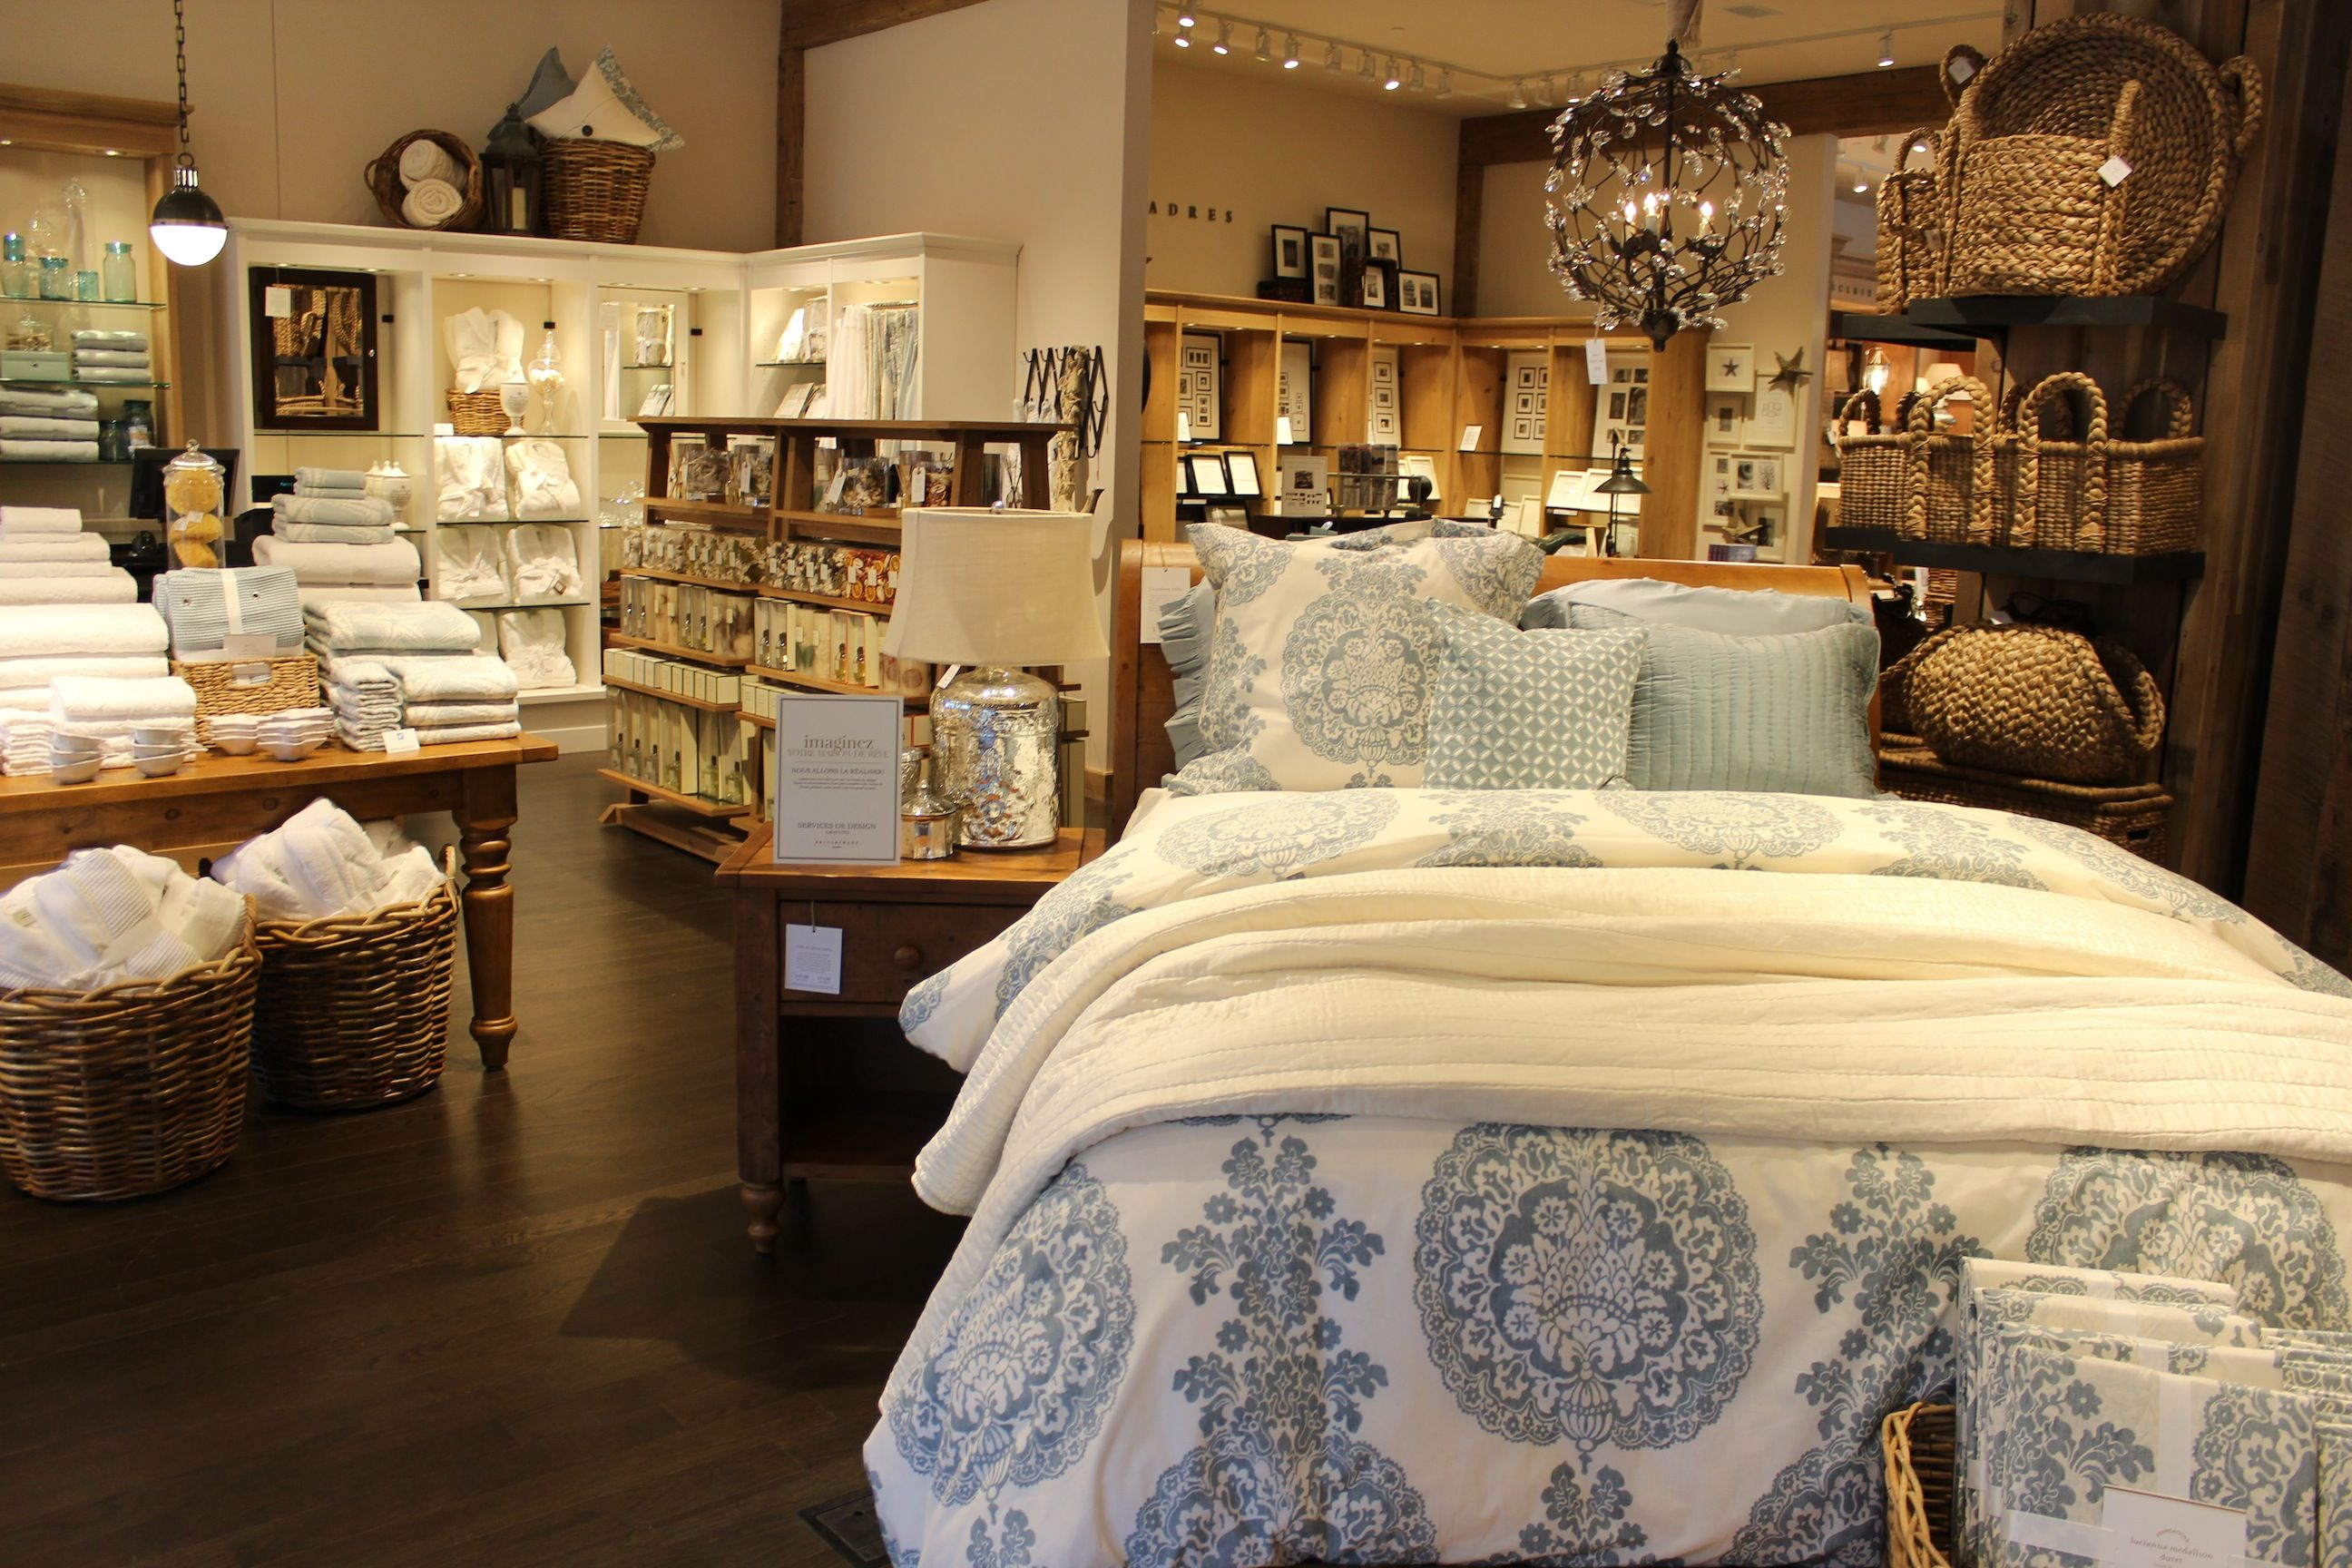 pottery barn store - Google Search | Visual Merchandising ...